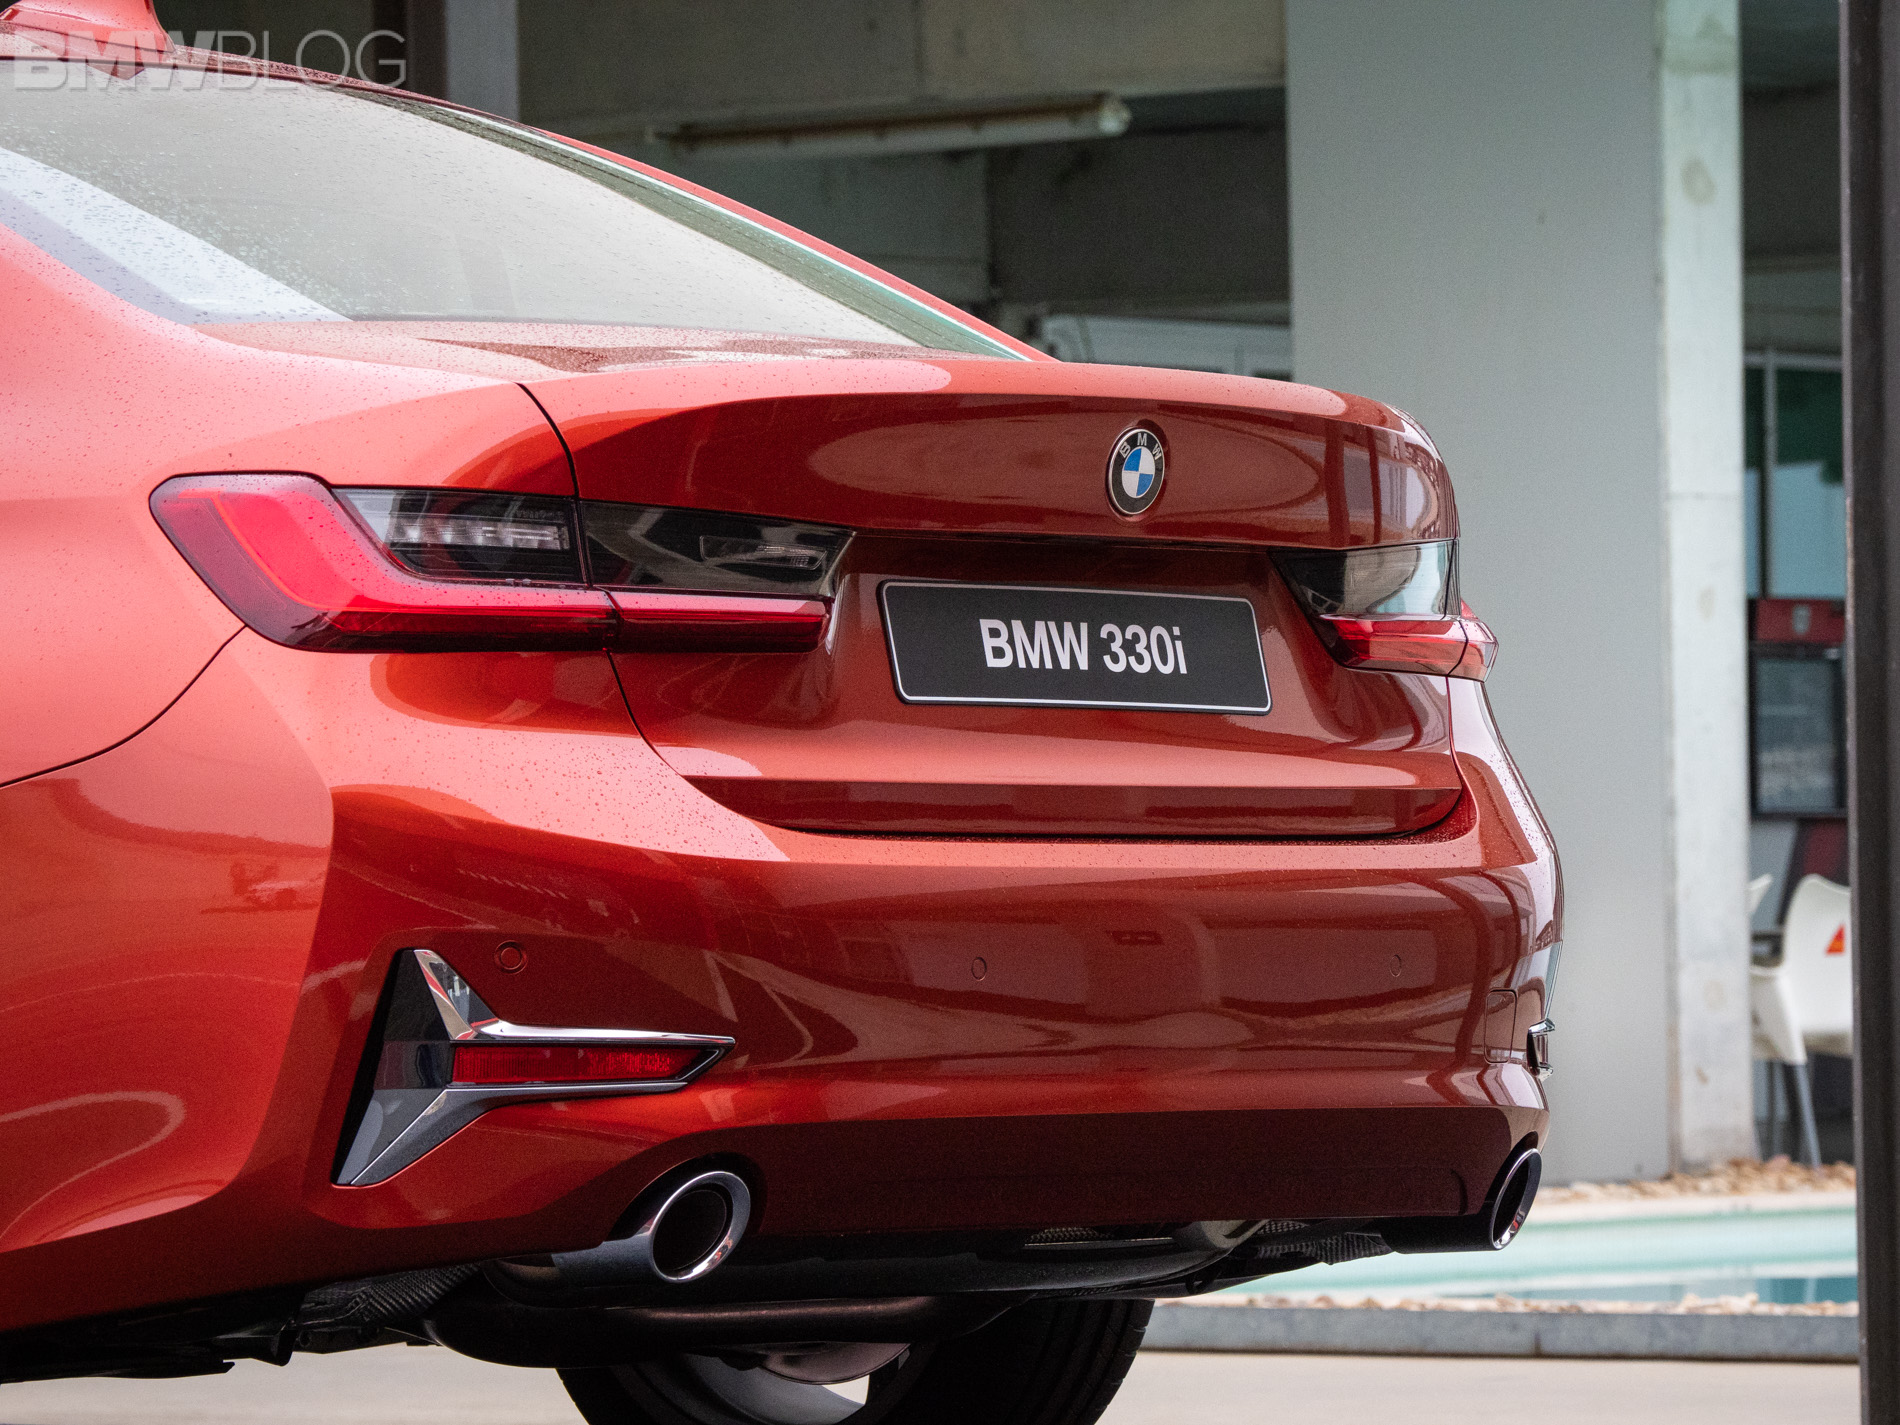 First Look At The New G20 Bmw 3 Series Luxury Line In Sunset Orange